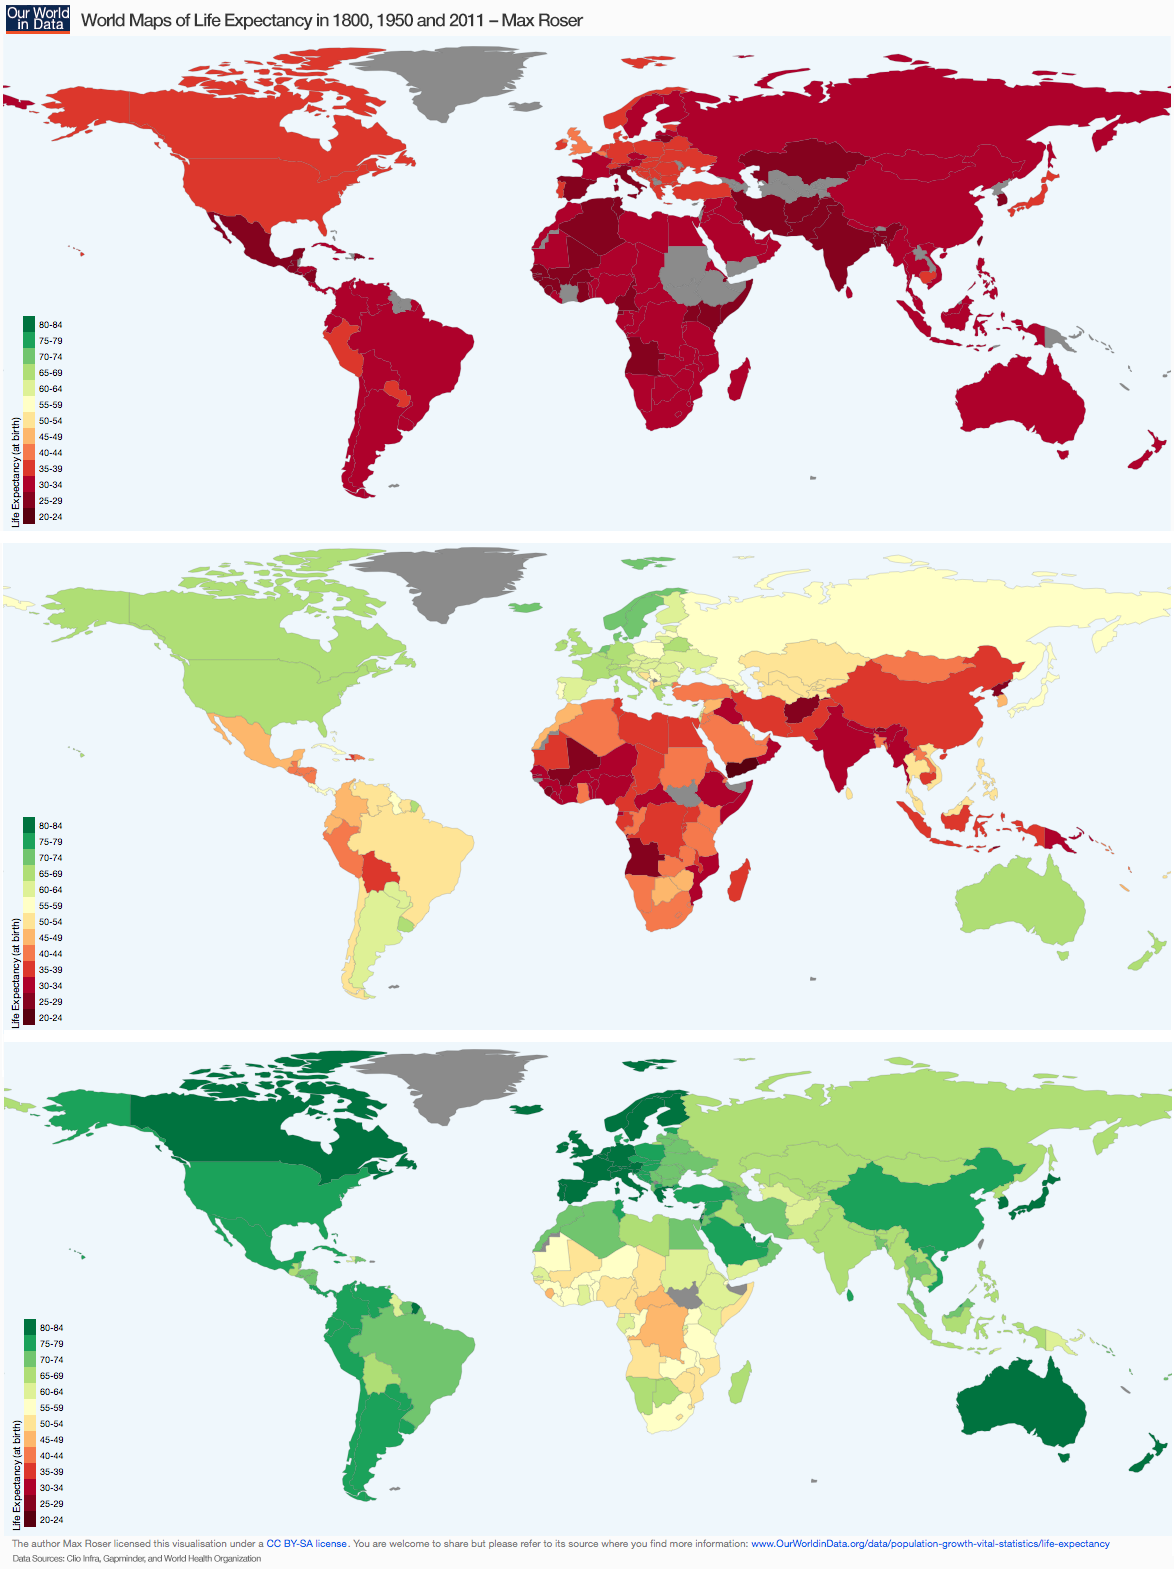 World Maps Of Life Expectancy In 1800, 1950 And 2011_Max Roser